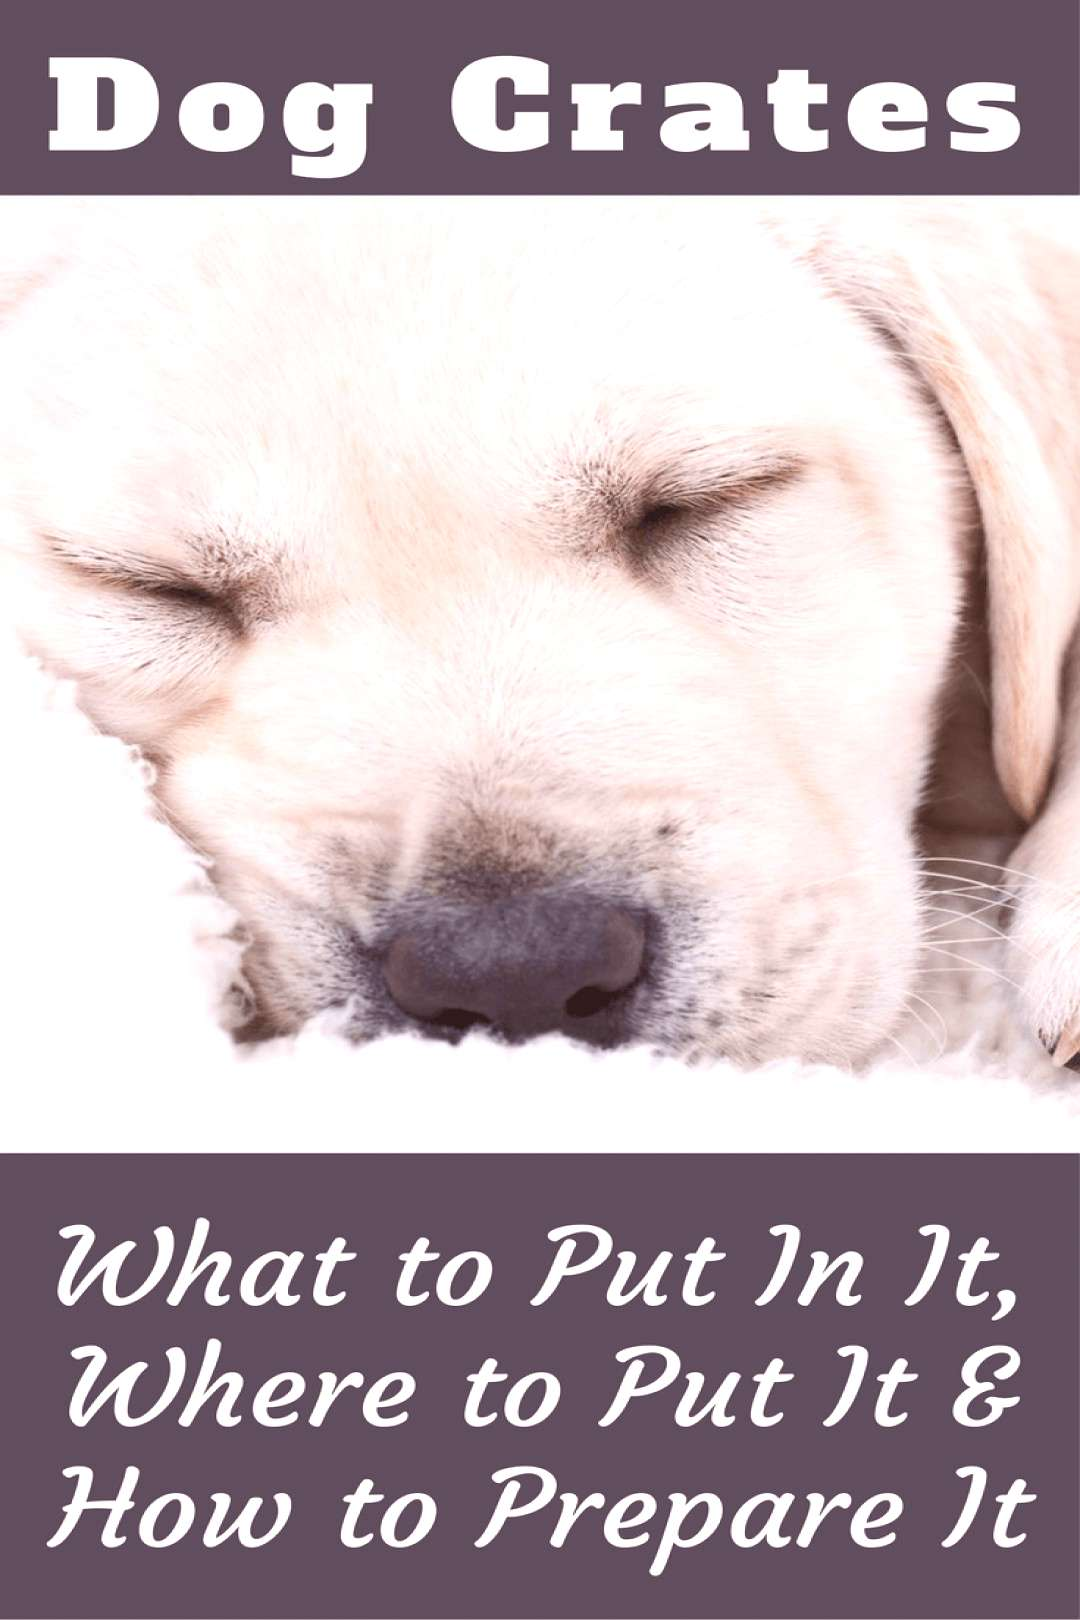 What to put in a dog crate, where to put it, how to get it prepared